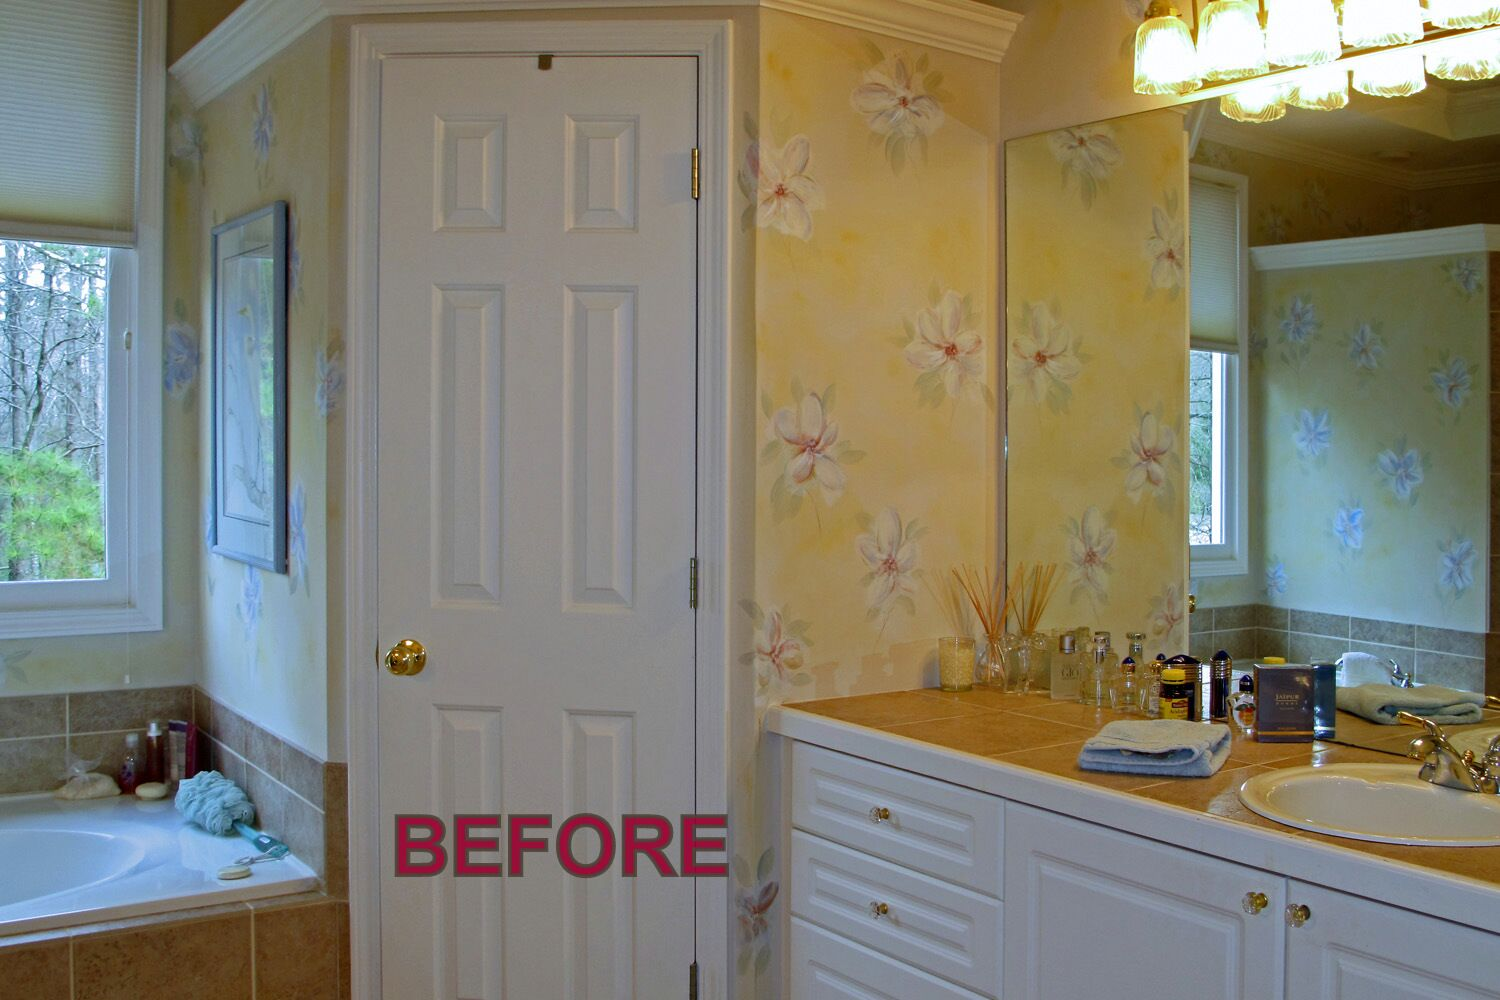 Before decorative painting bathroom remodel